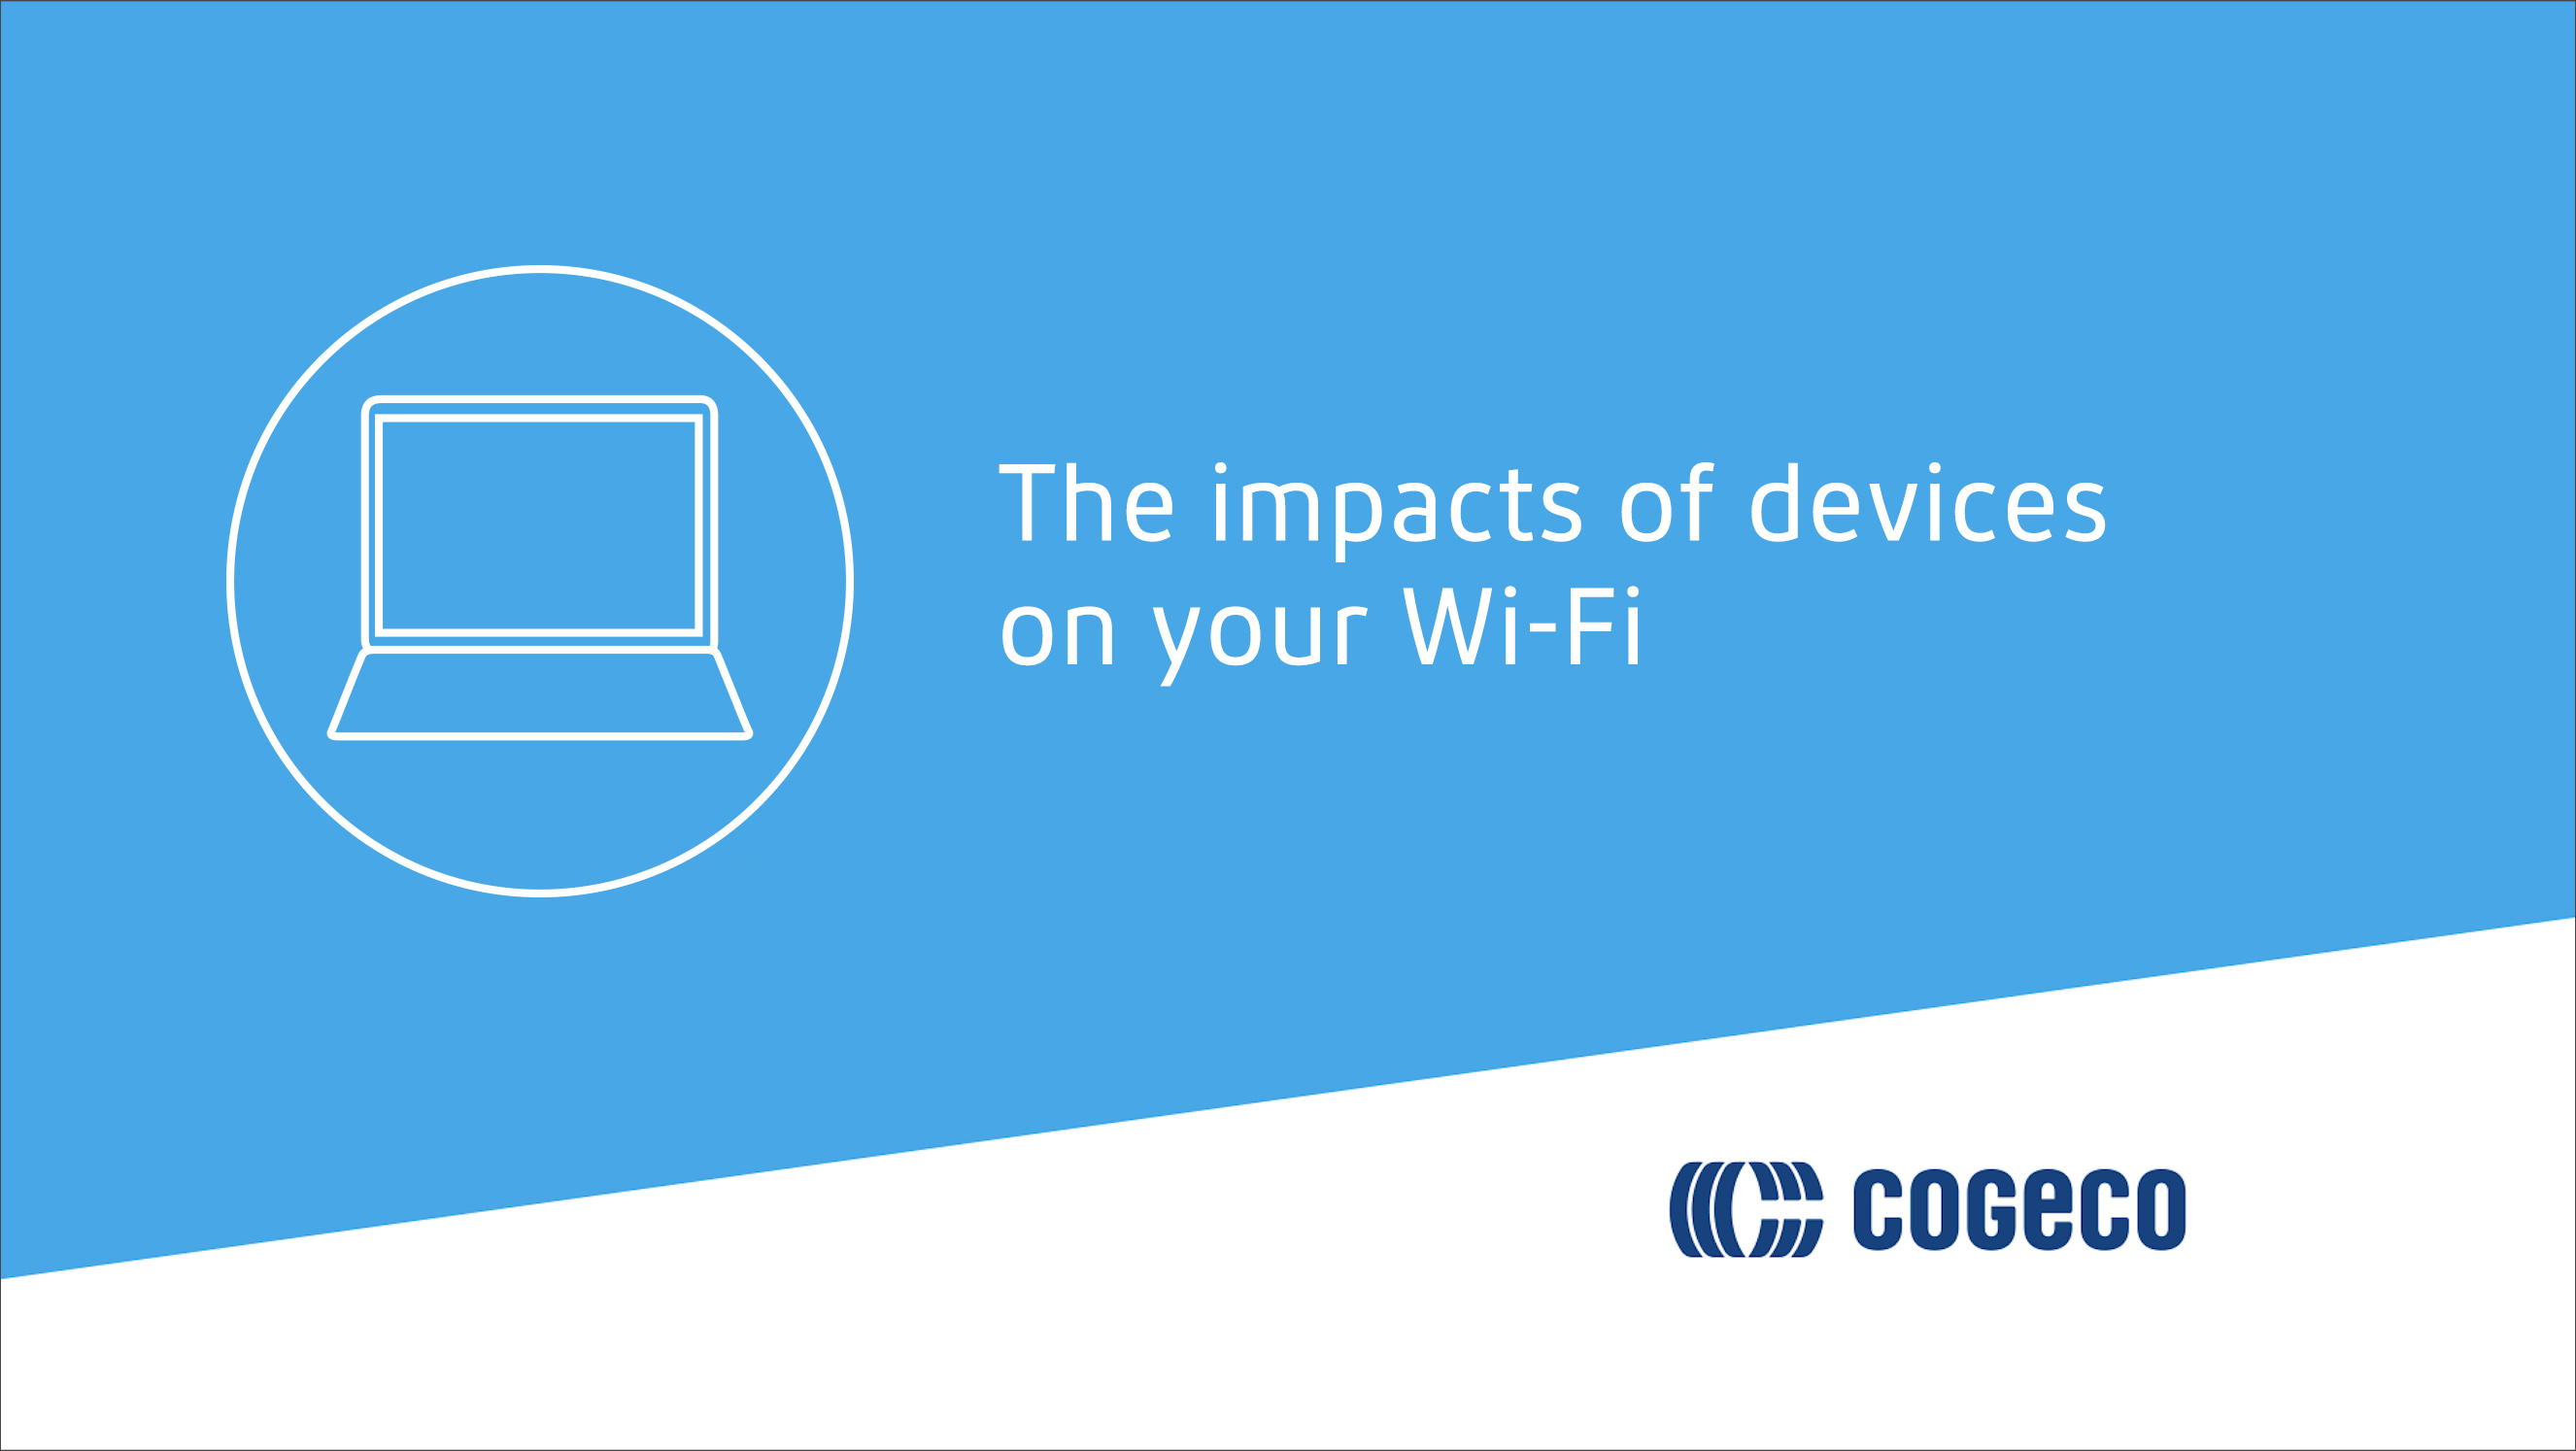 The impact of devices on your WI-FI